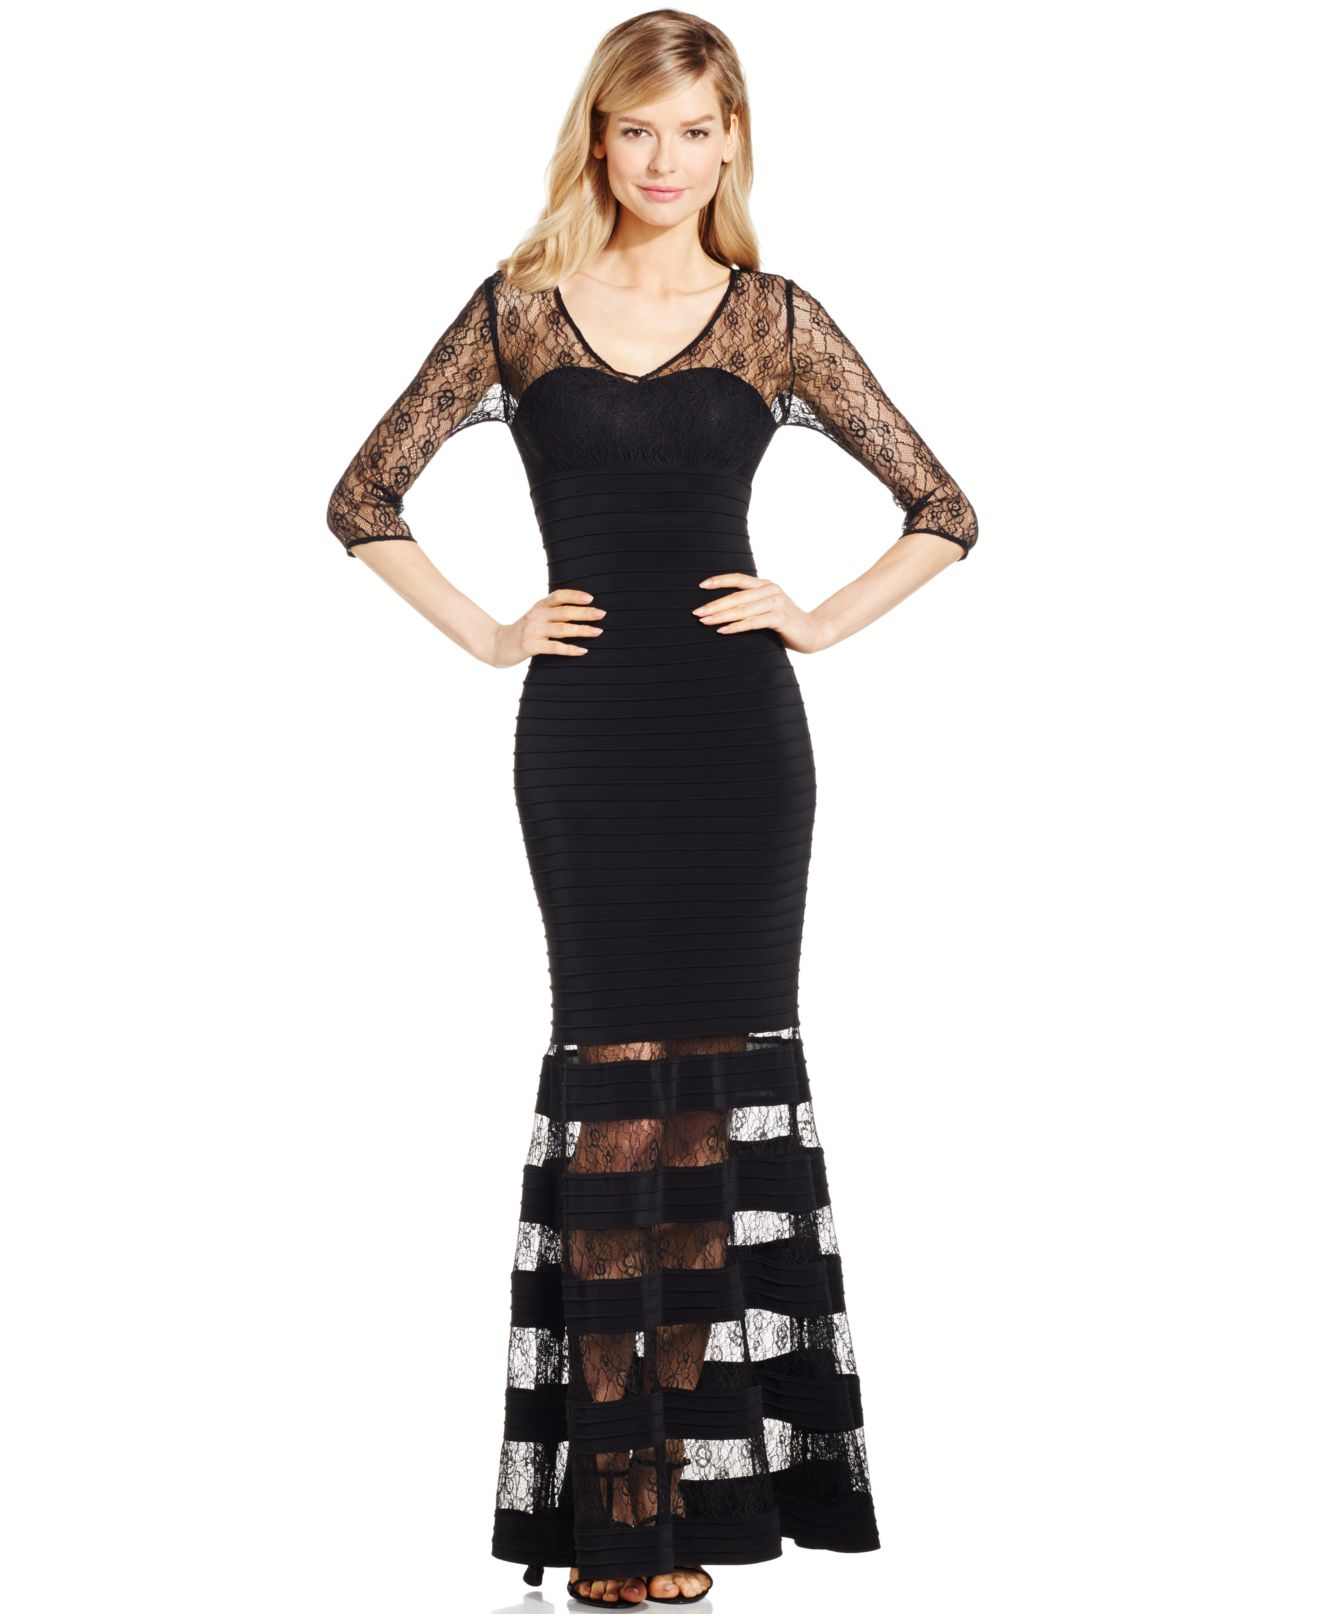 Lyst - Js Collections Lace Combo V-neck Dress in Black